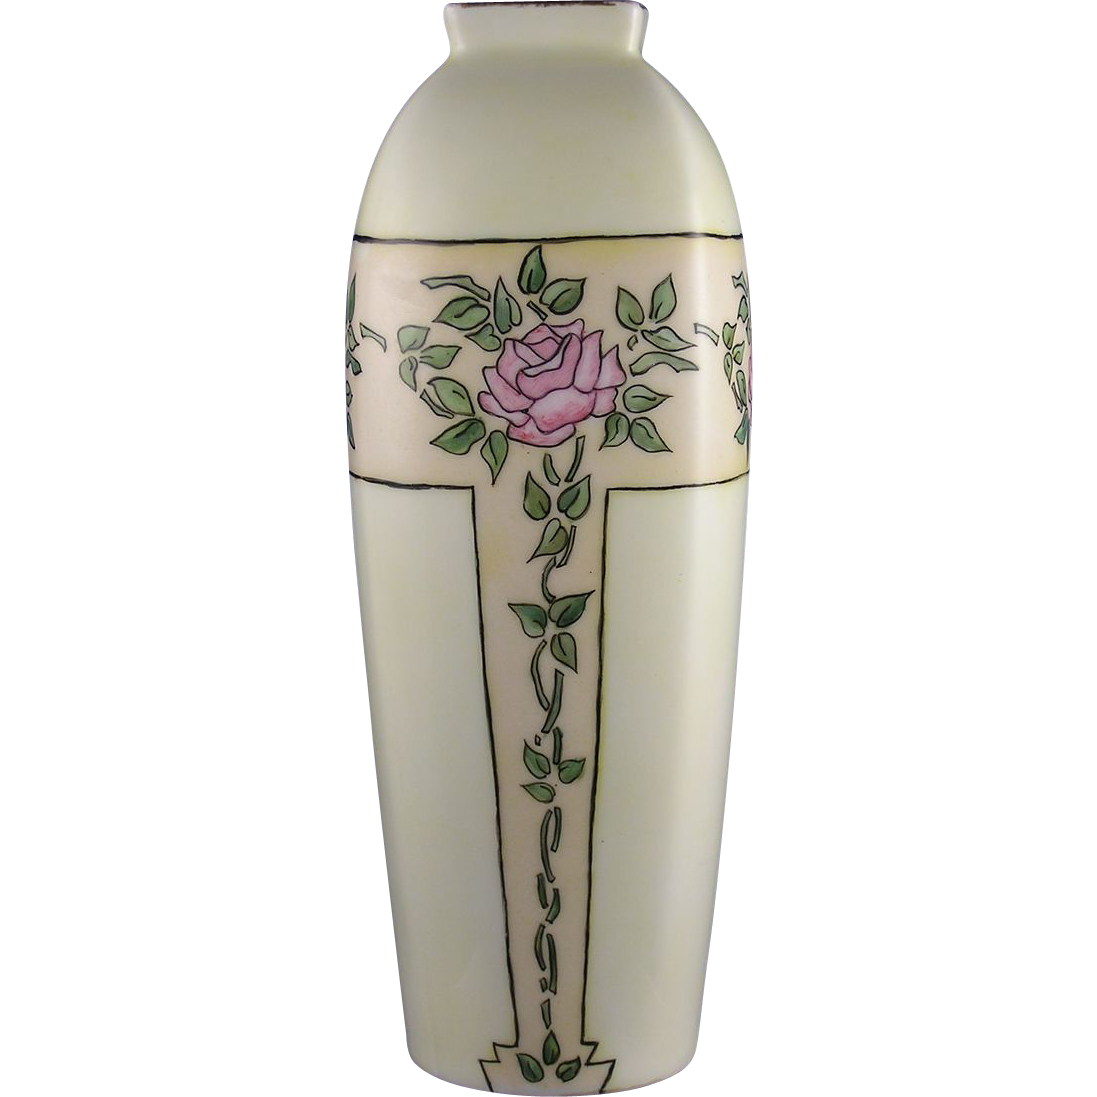 Fisher & Mieg Pirkenhammer Austria Arts & Crafts Rose Motif Vase (c.1900-1918)